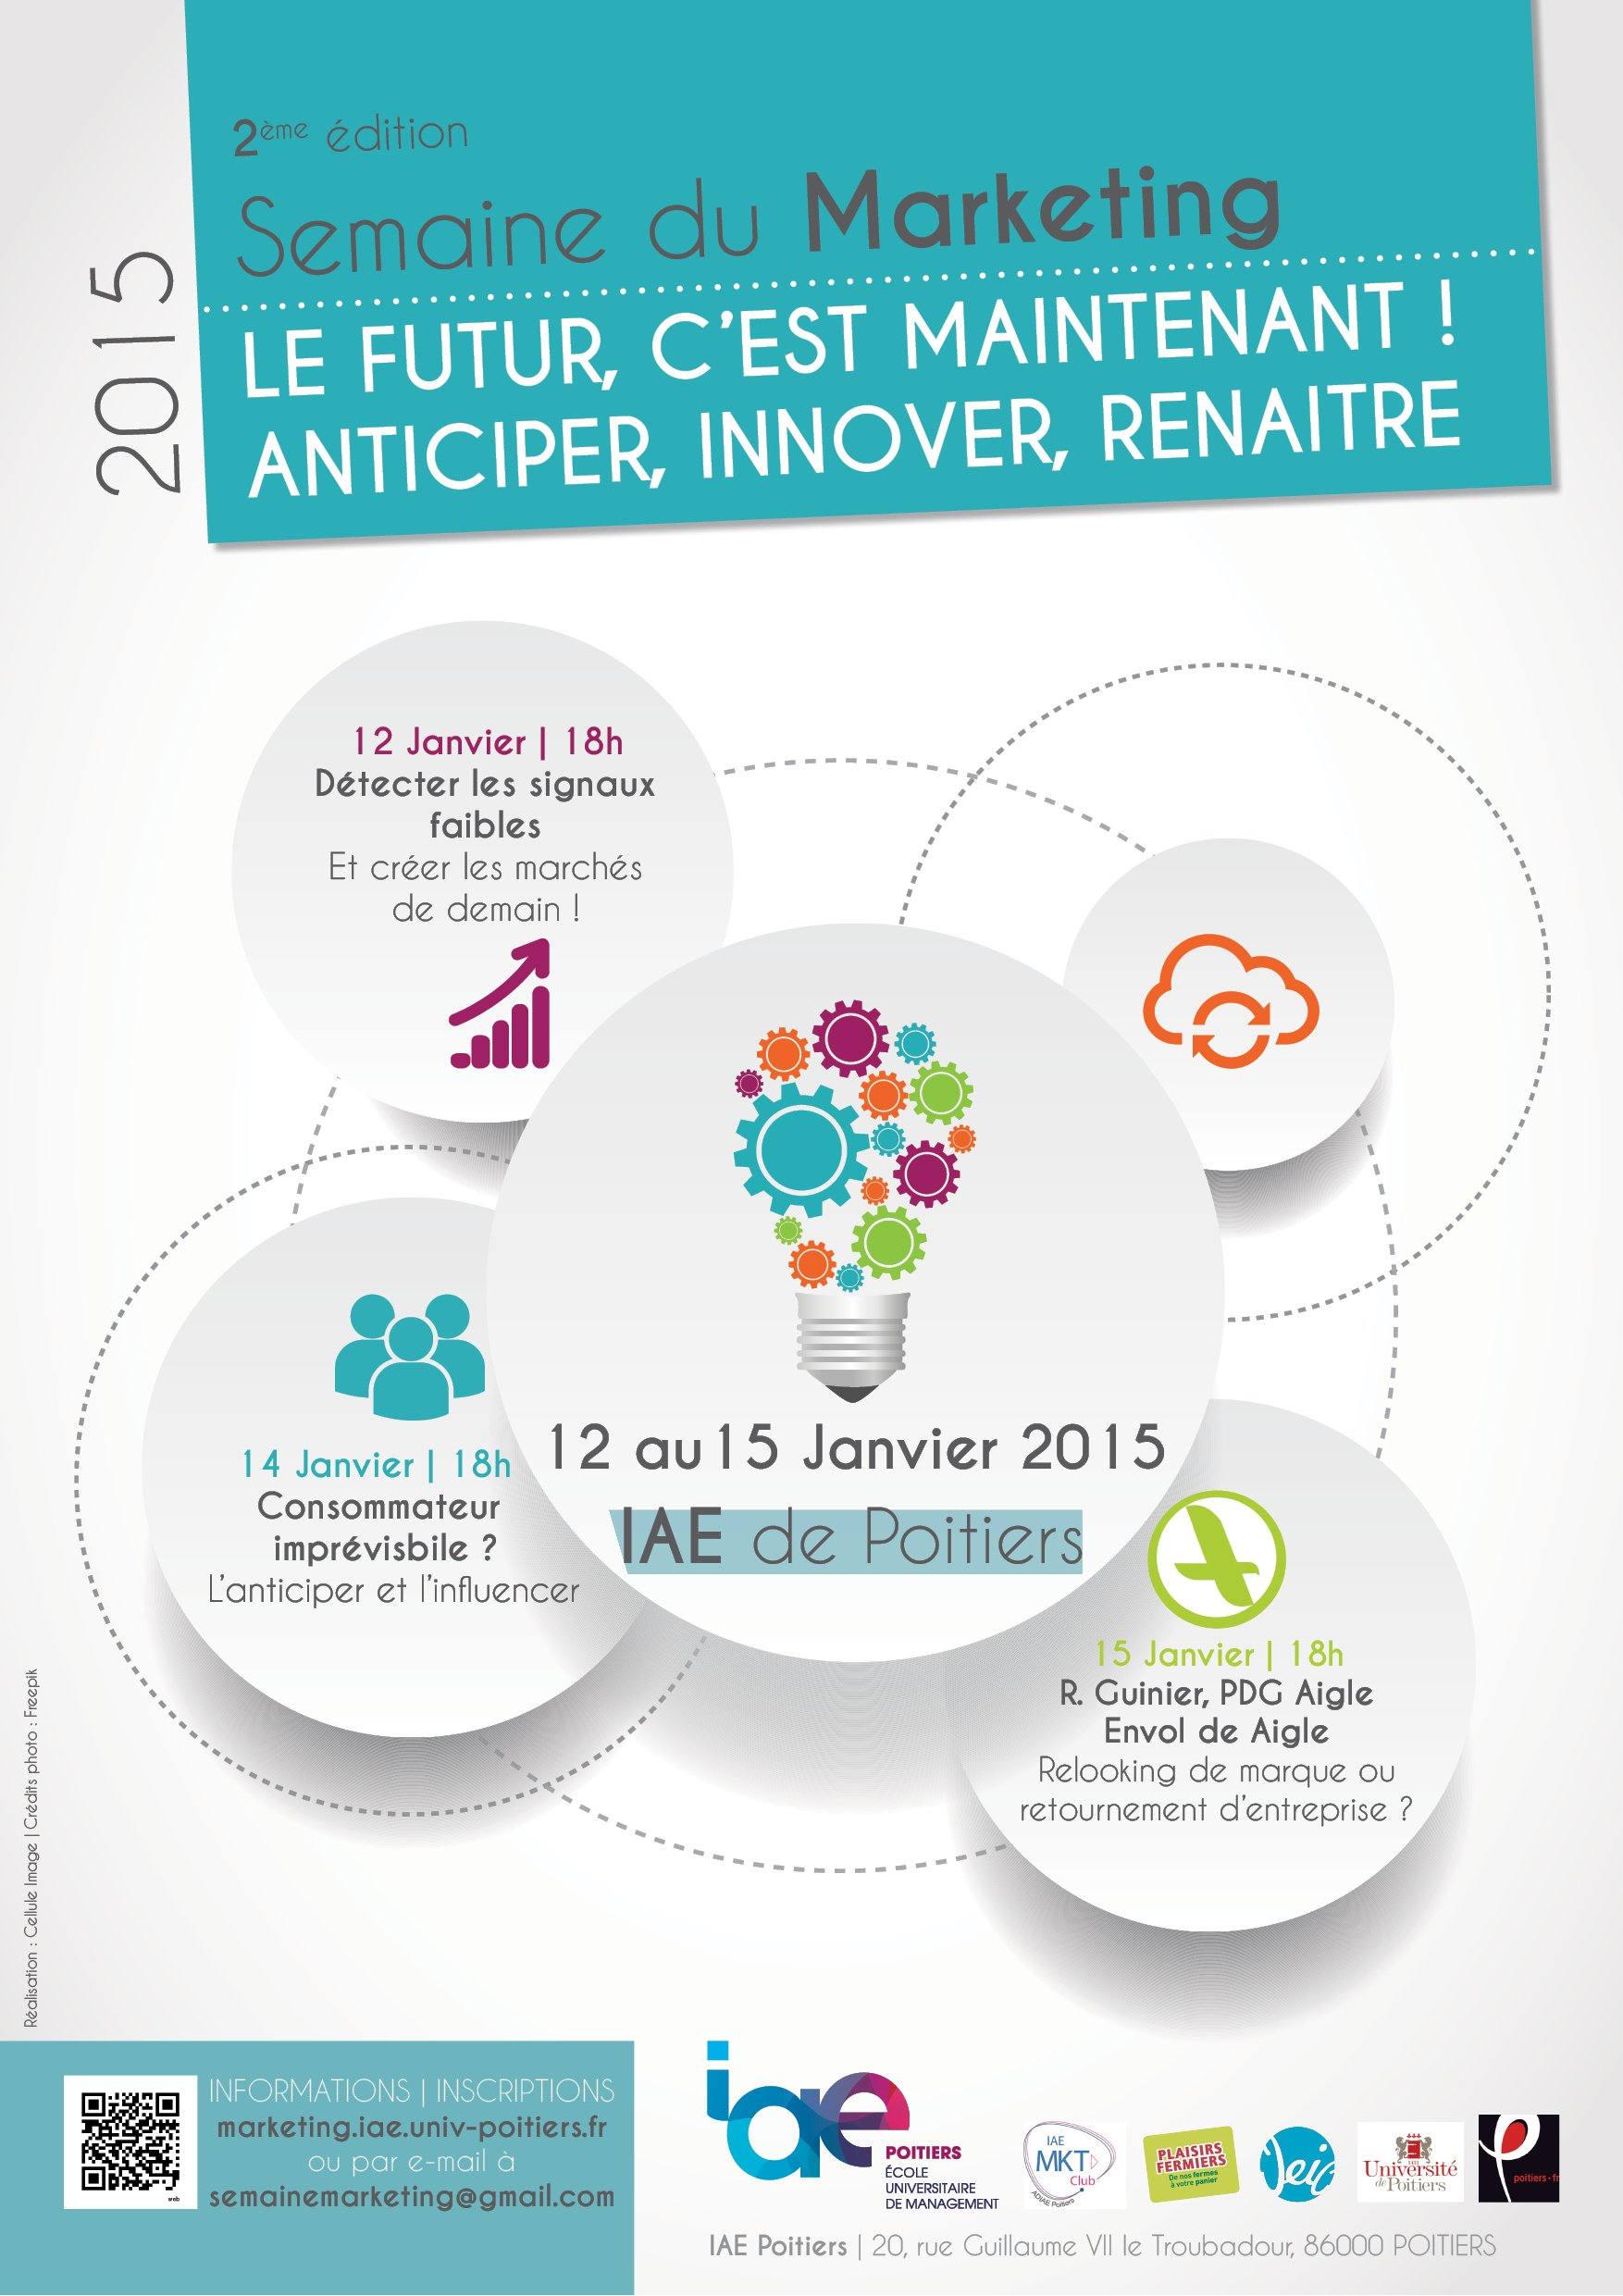 Semaine du Marketing 2015